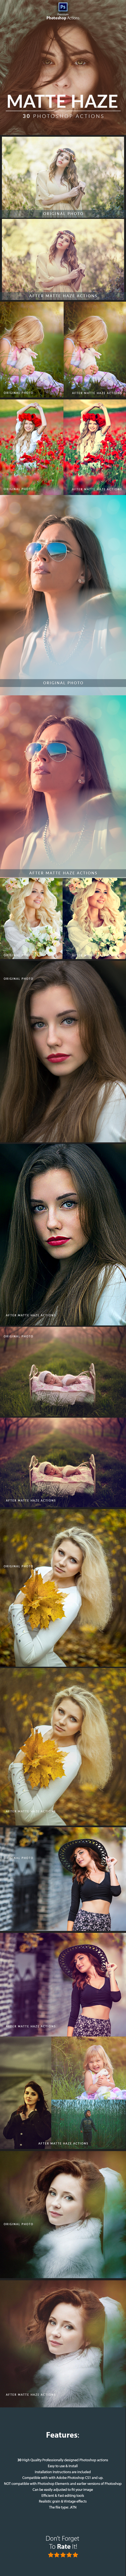 GraphicRiver Matte Haze Photoshop Actions 20780604